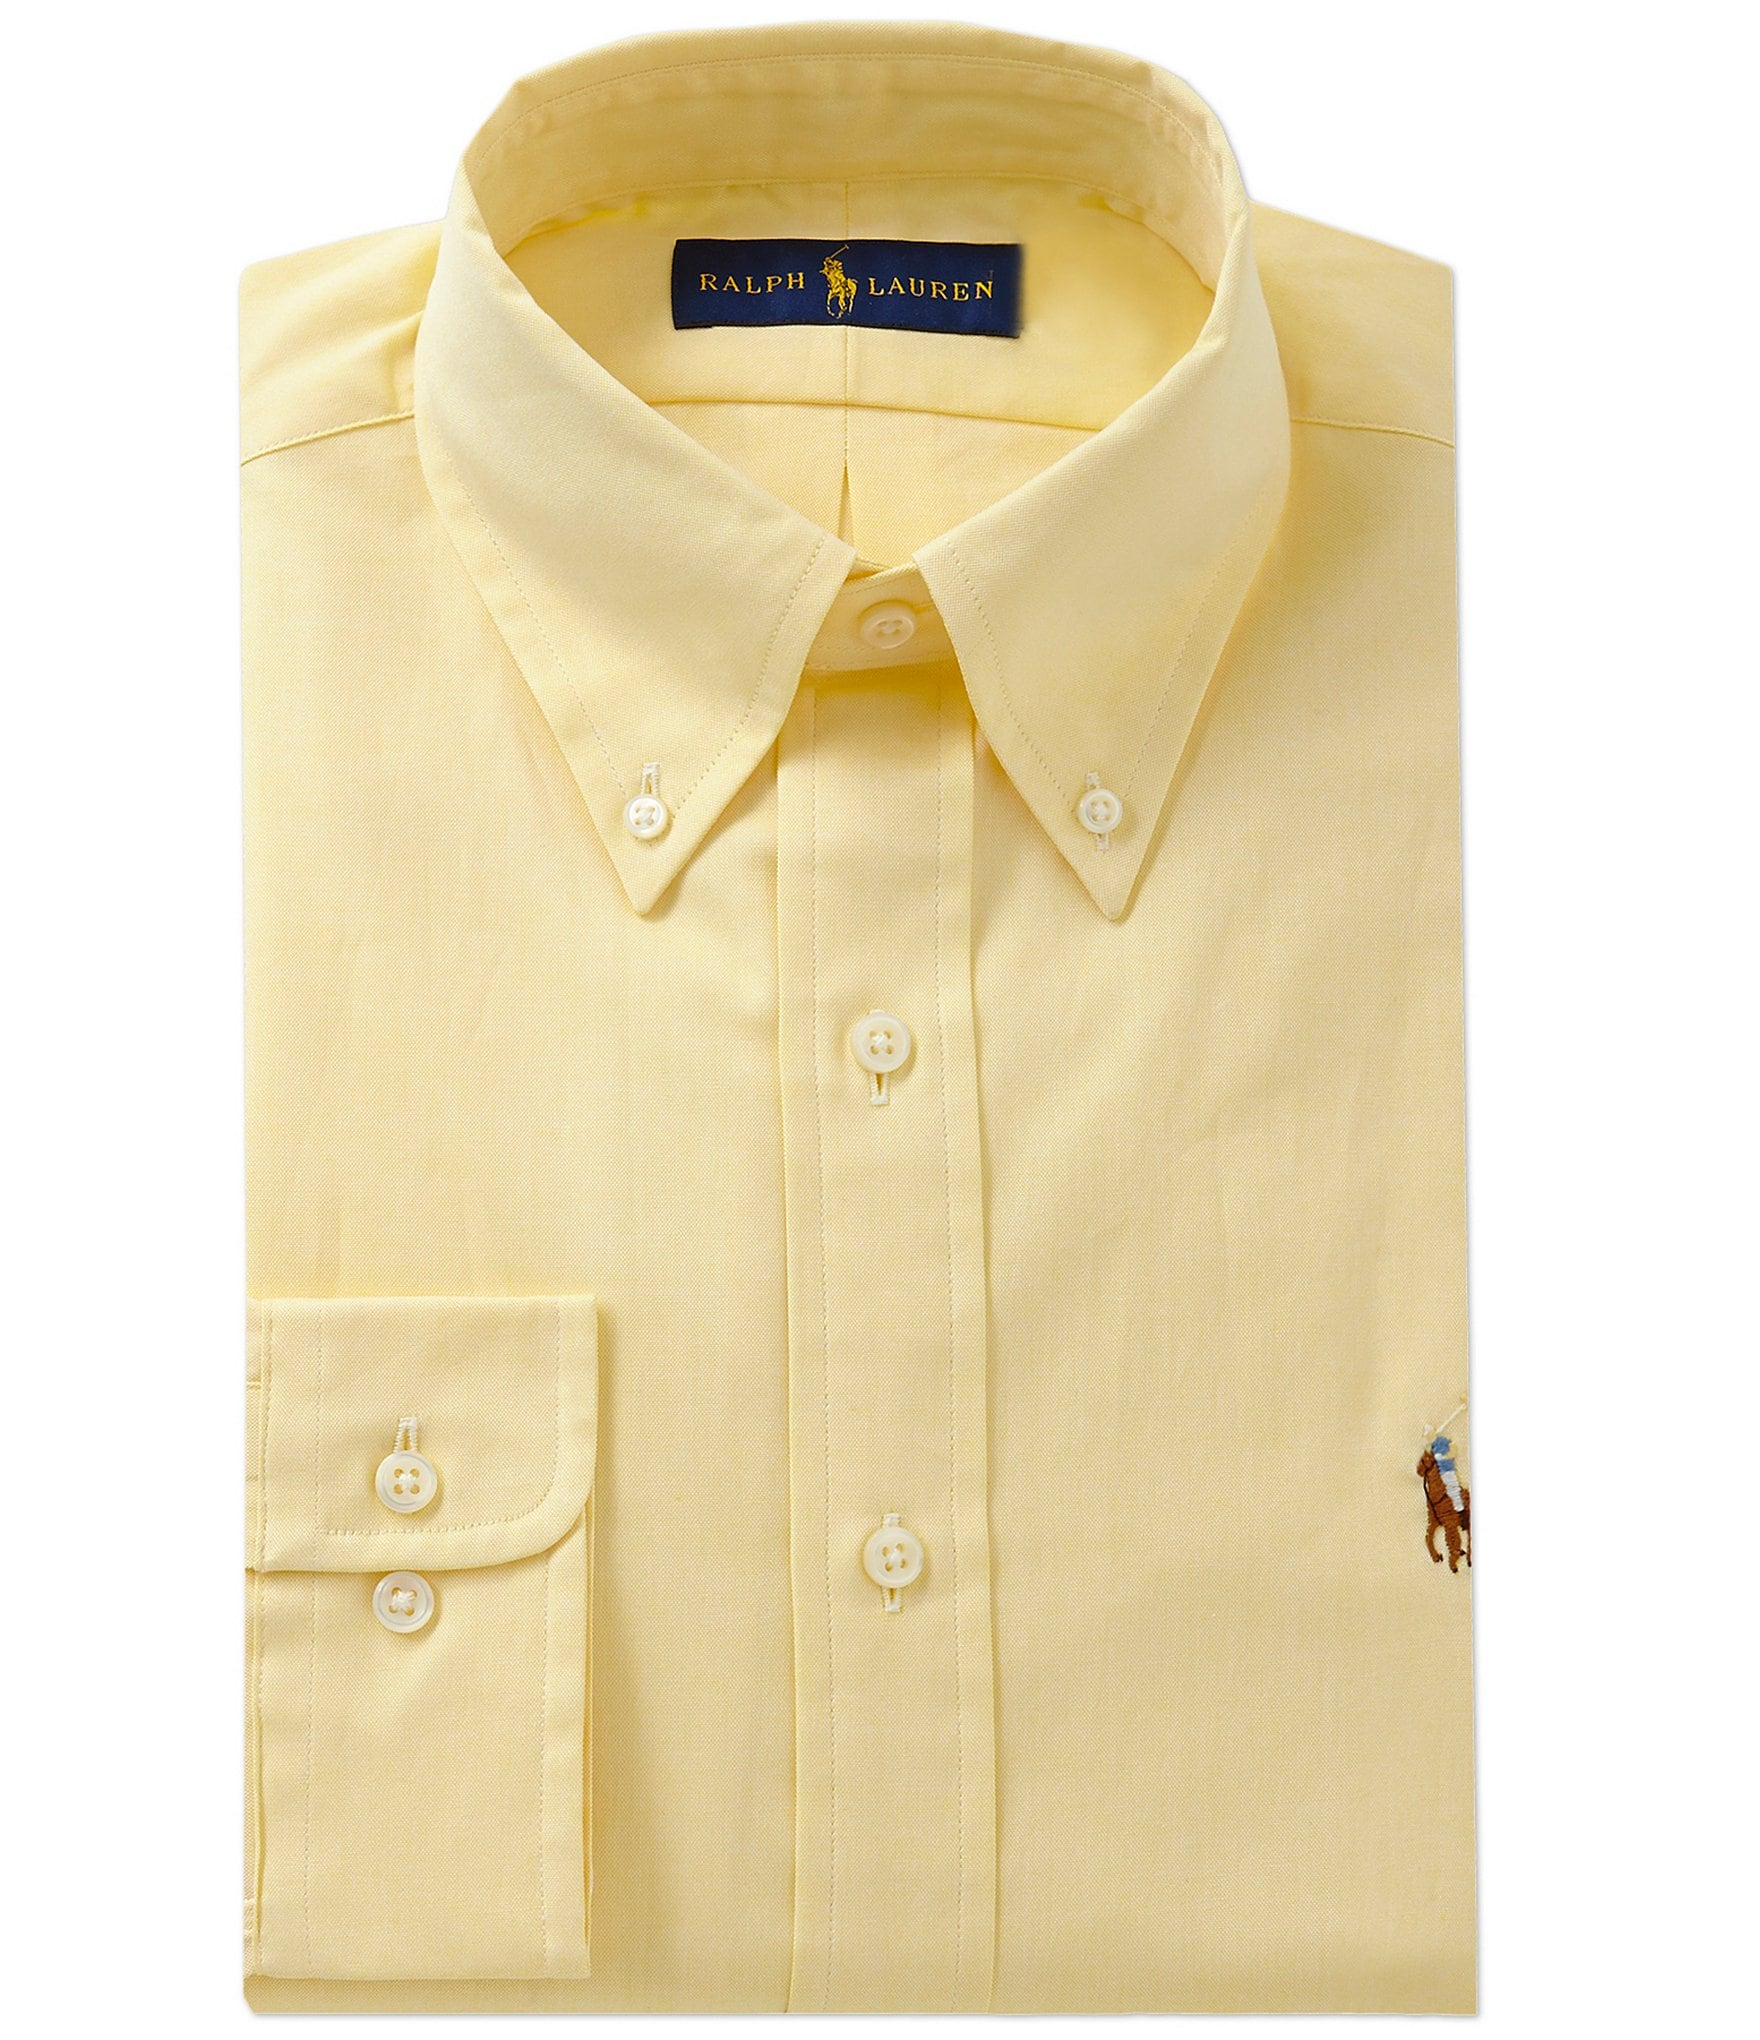 Polo ralph lauren classic fit solid oxford dress shirt for Mens oxford dress shirts